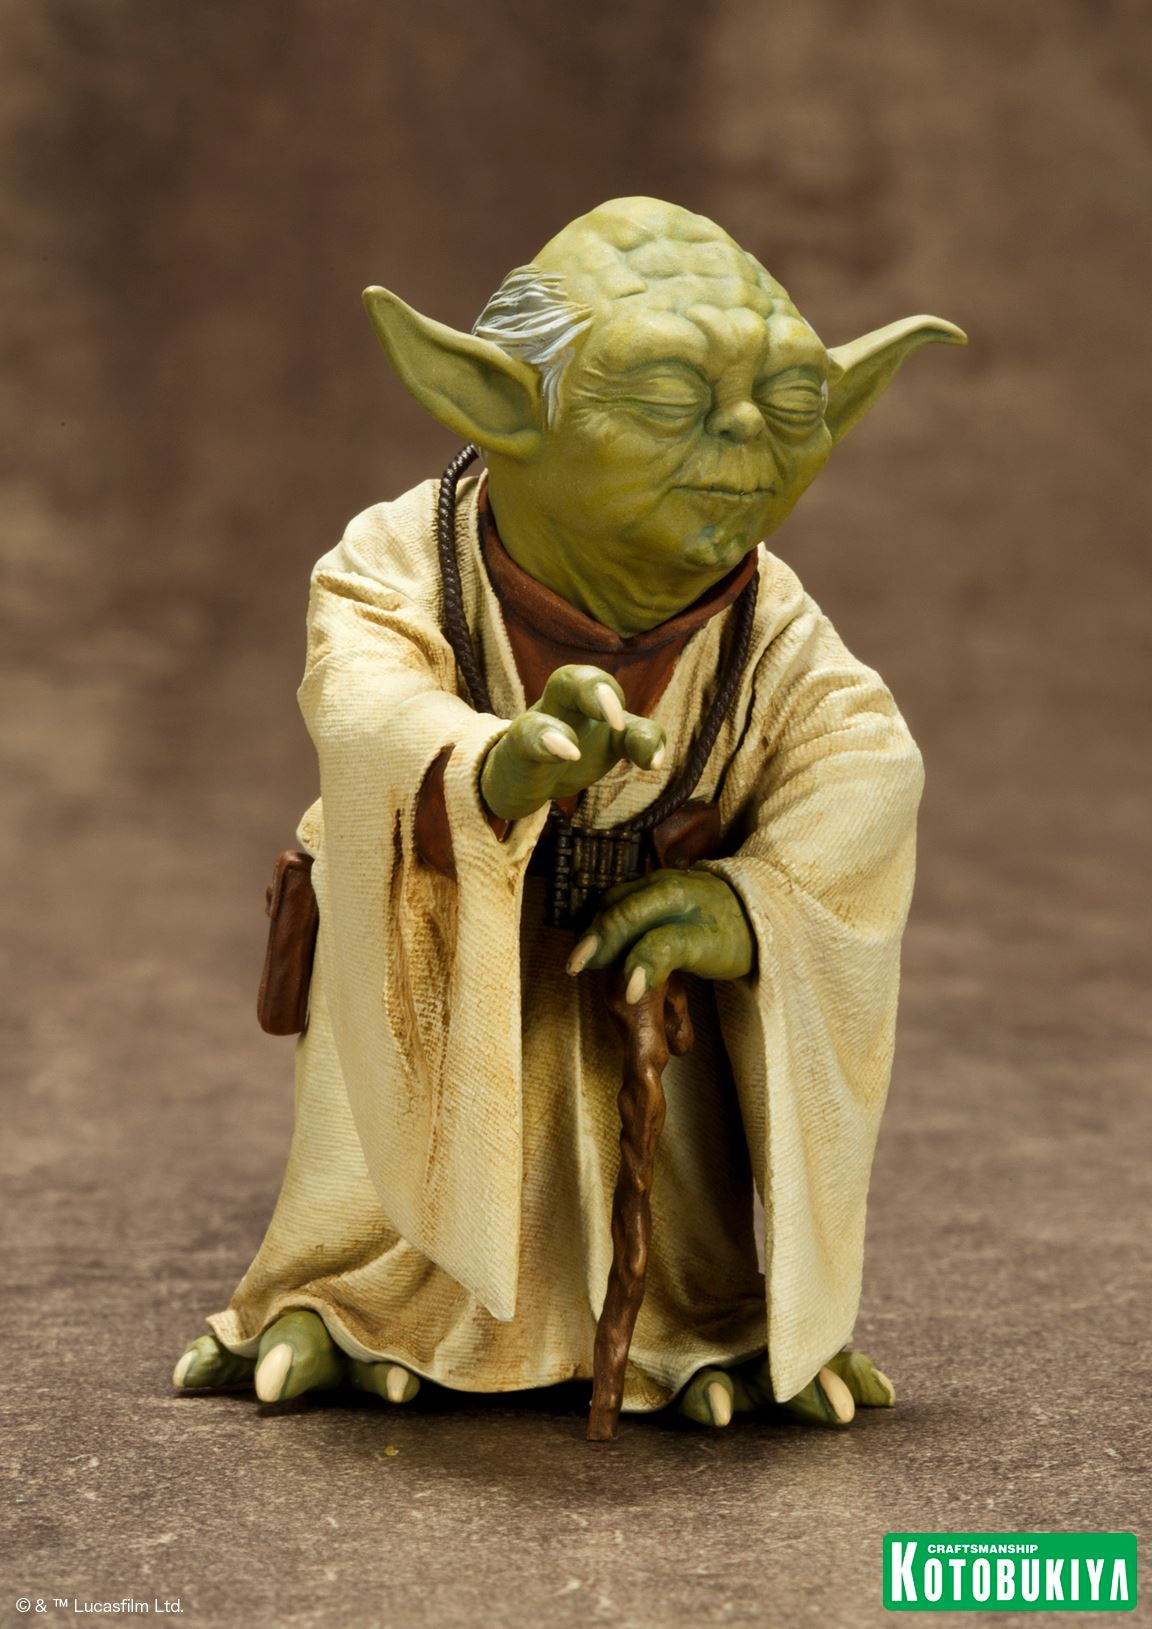 Kotobukiya - Star Wars - Yoda and R2D2 Dagobah ARTFX+ Statue Set - Marvelous Toys - 4